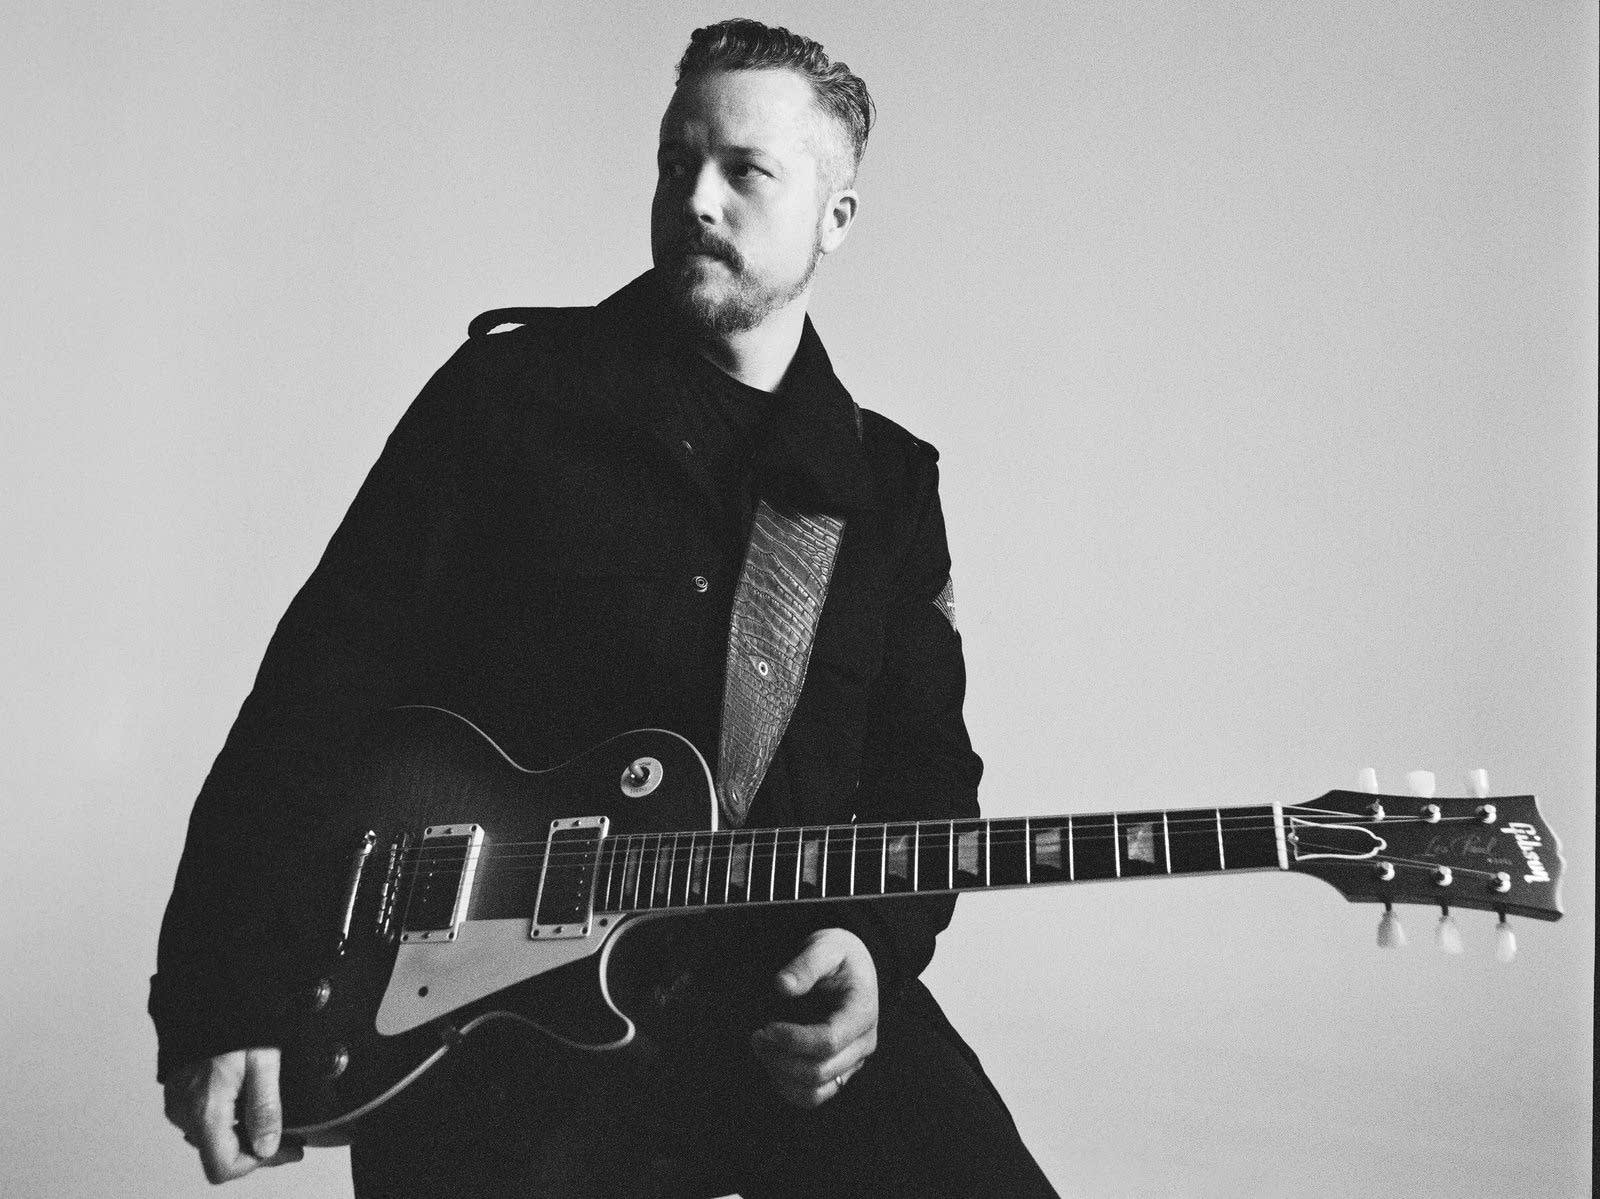 Jason Isbell portrait by Alysse Gafkjen